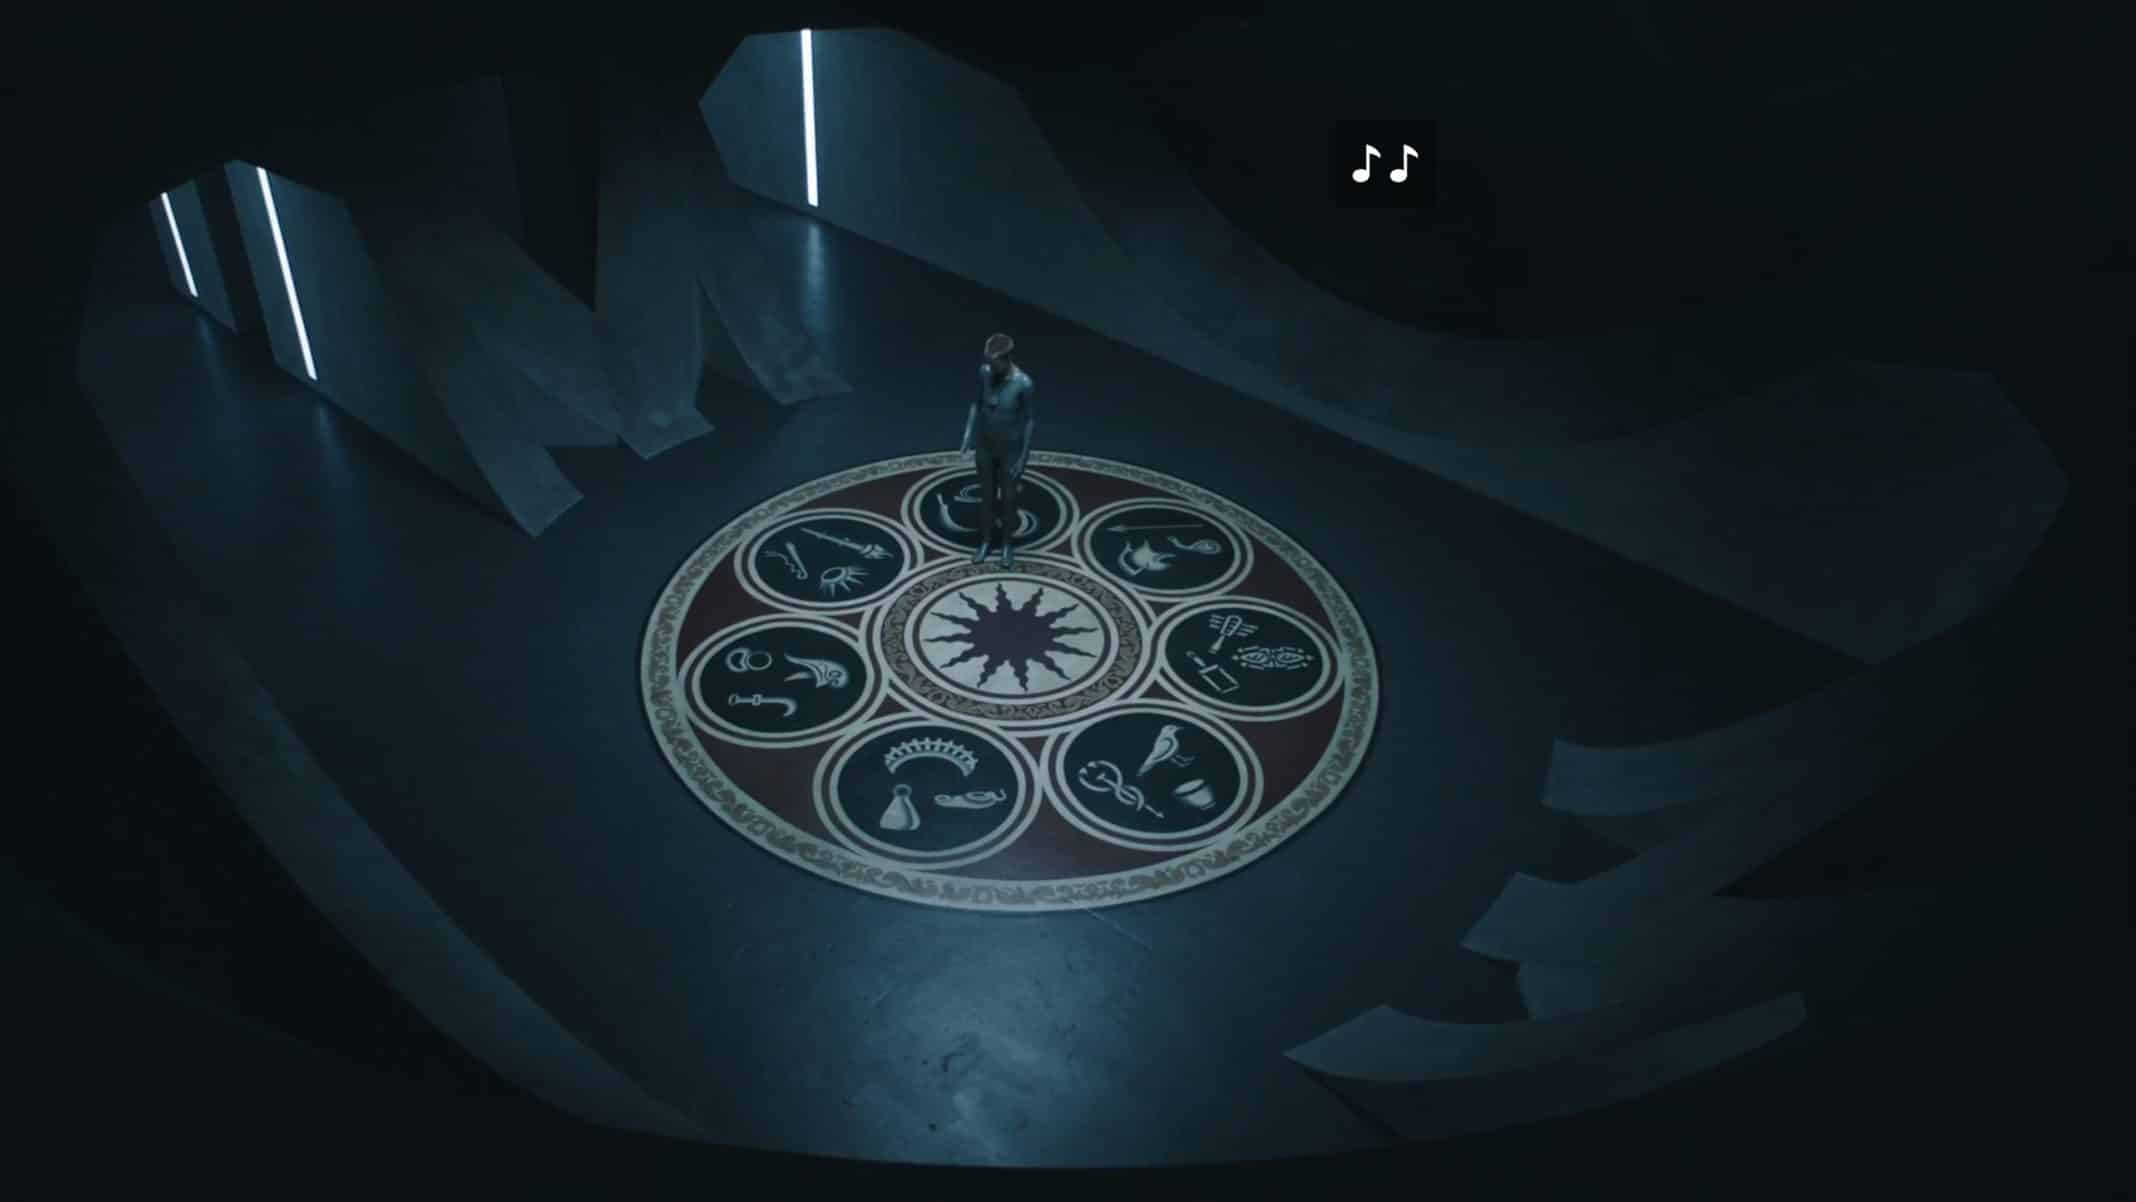 Mother, in a dream, looking down at a floor with multiple symbols.